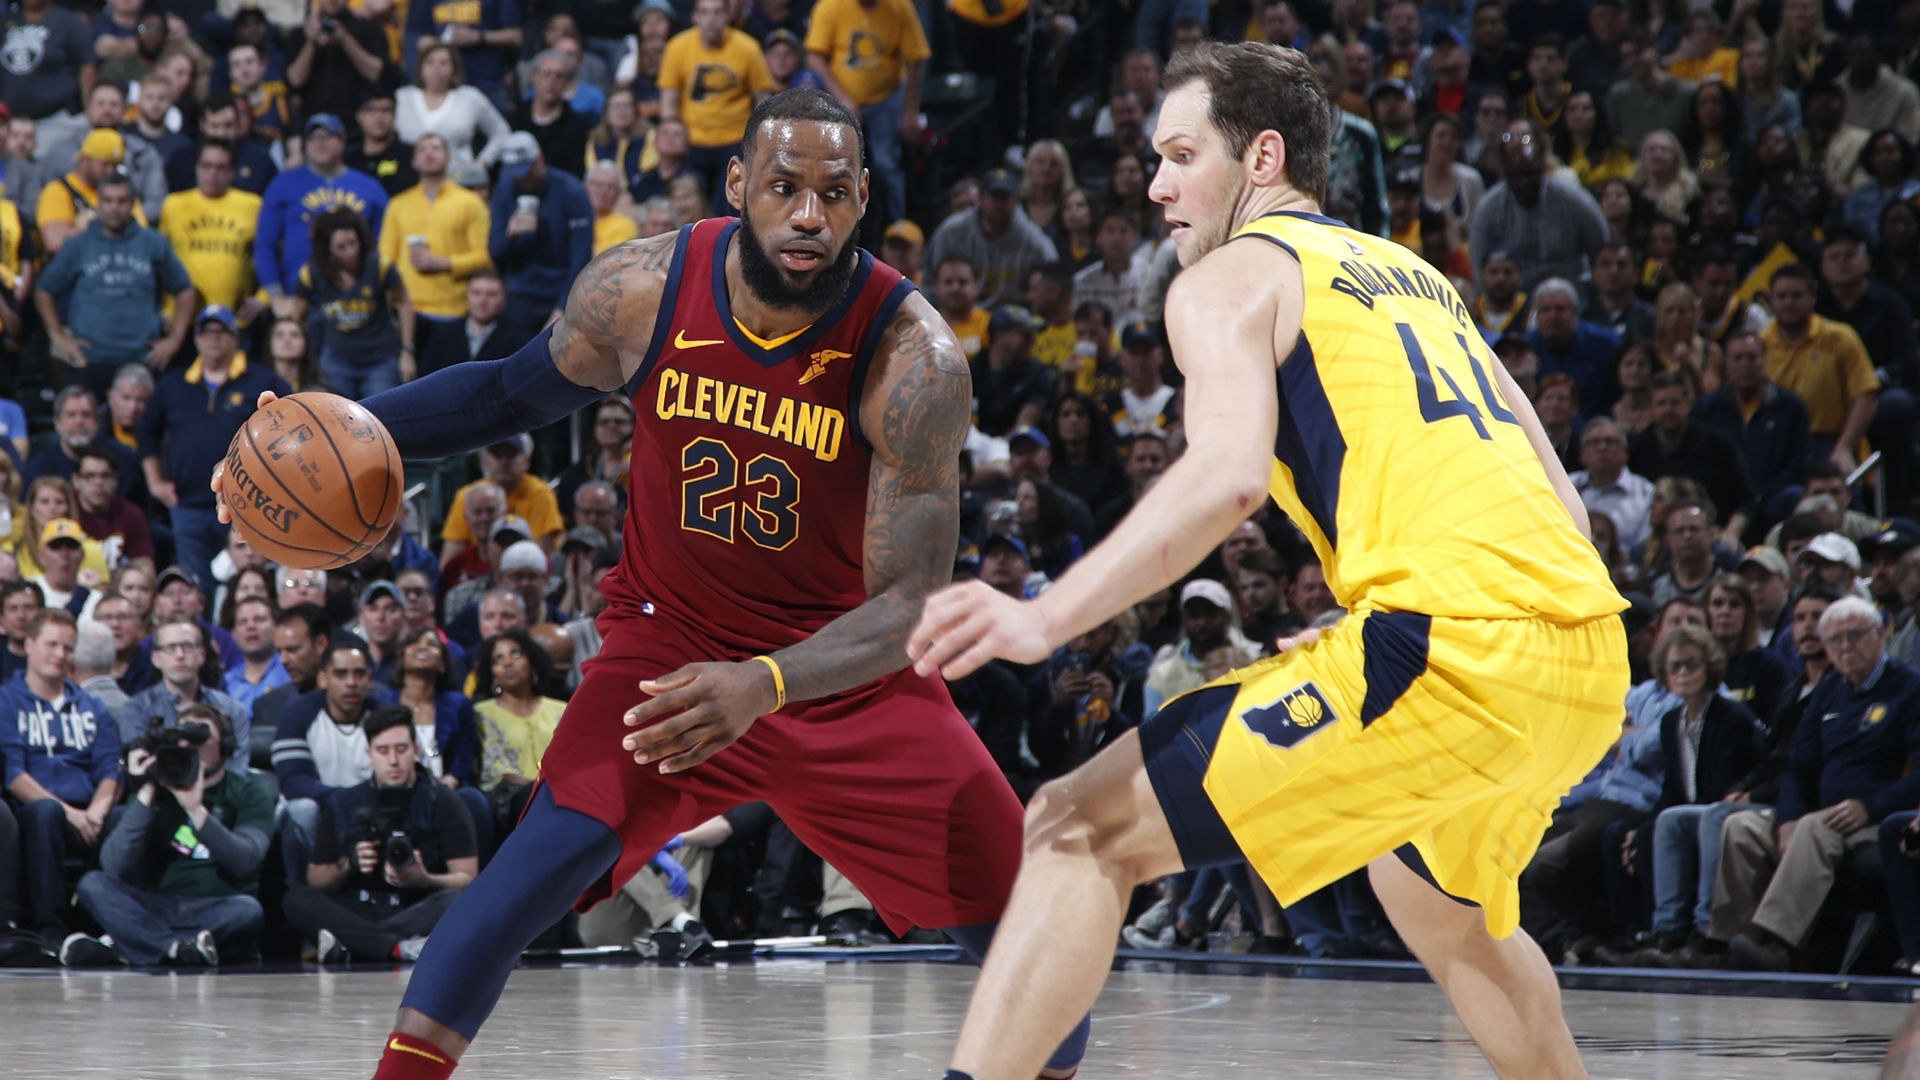 NBA playoffs 2018: Three takeaways from Cavs' gutsy Game 4 win over Pacers - NBA - Sporting News